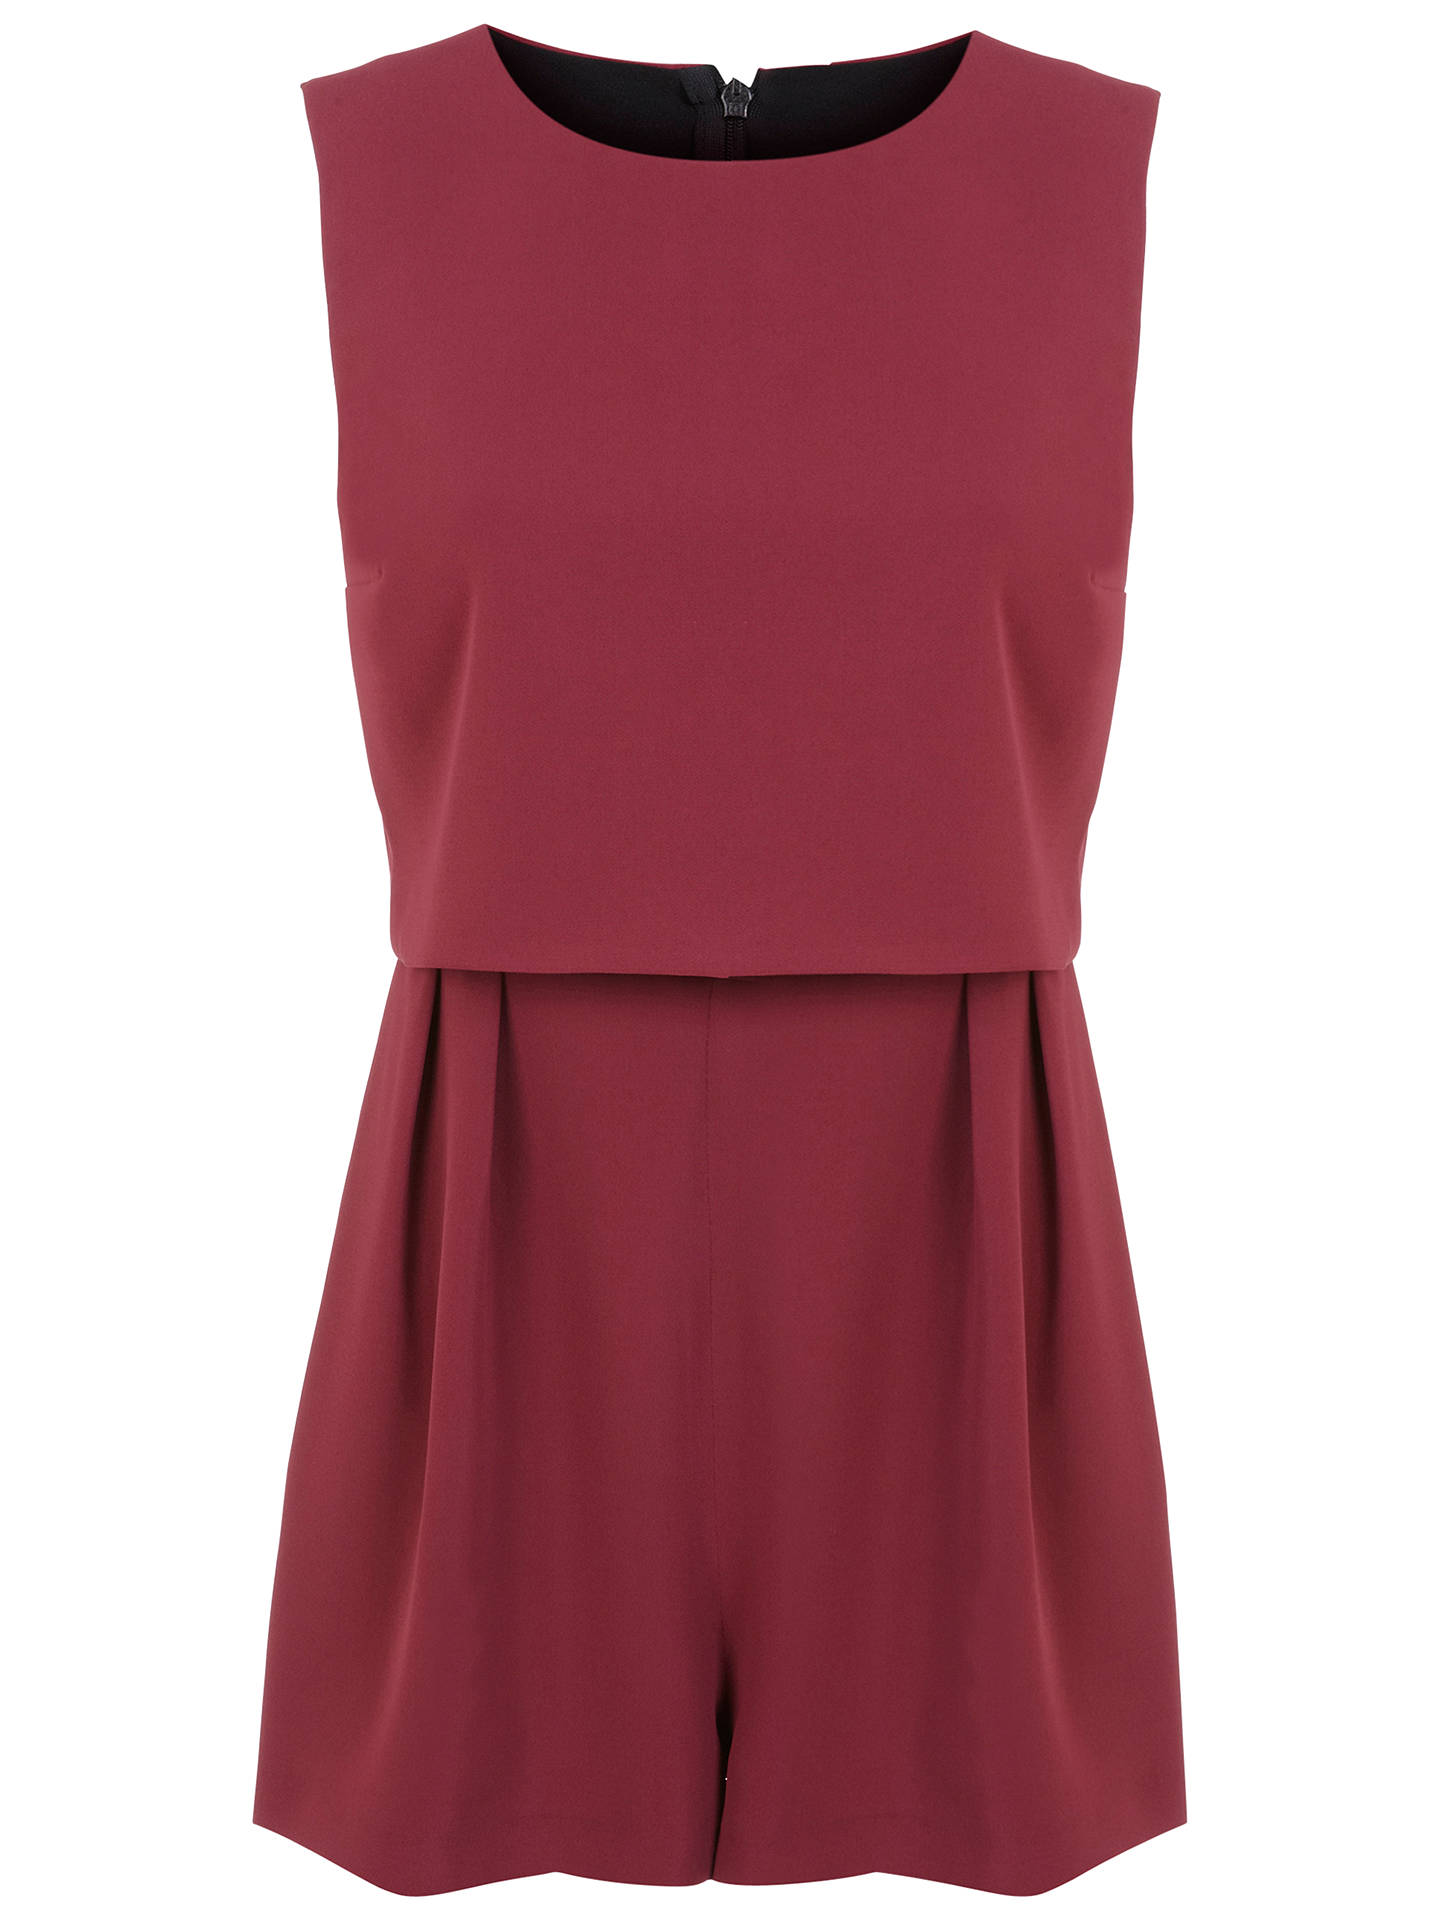 d02f29b2b7b BuyMiss Selfridge Petite Playsuit